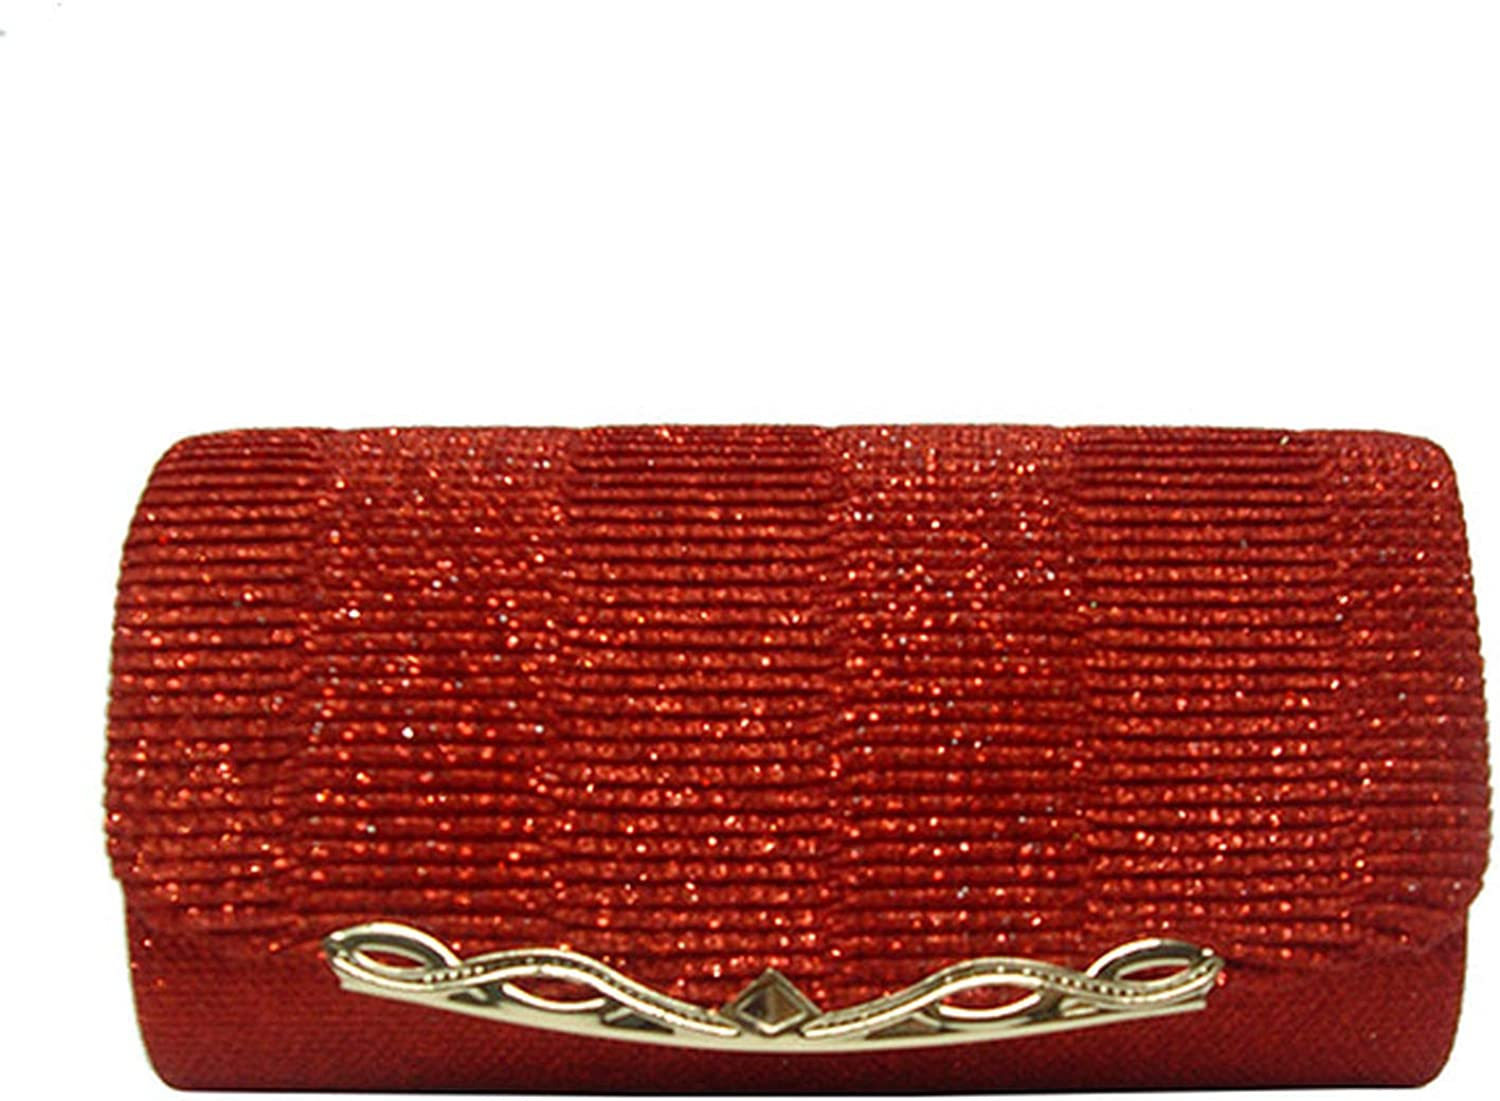 Shiny Evening Bag 5 Solid...